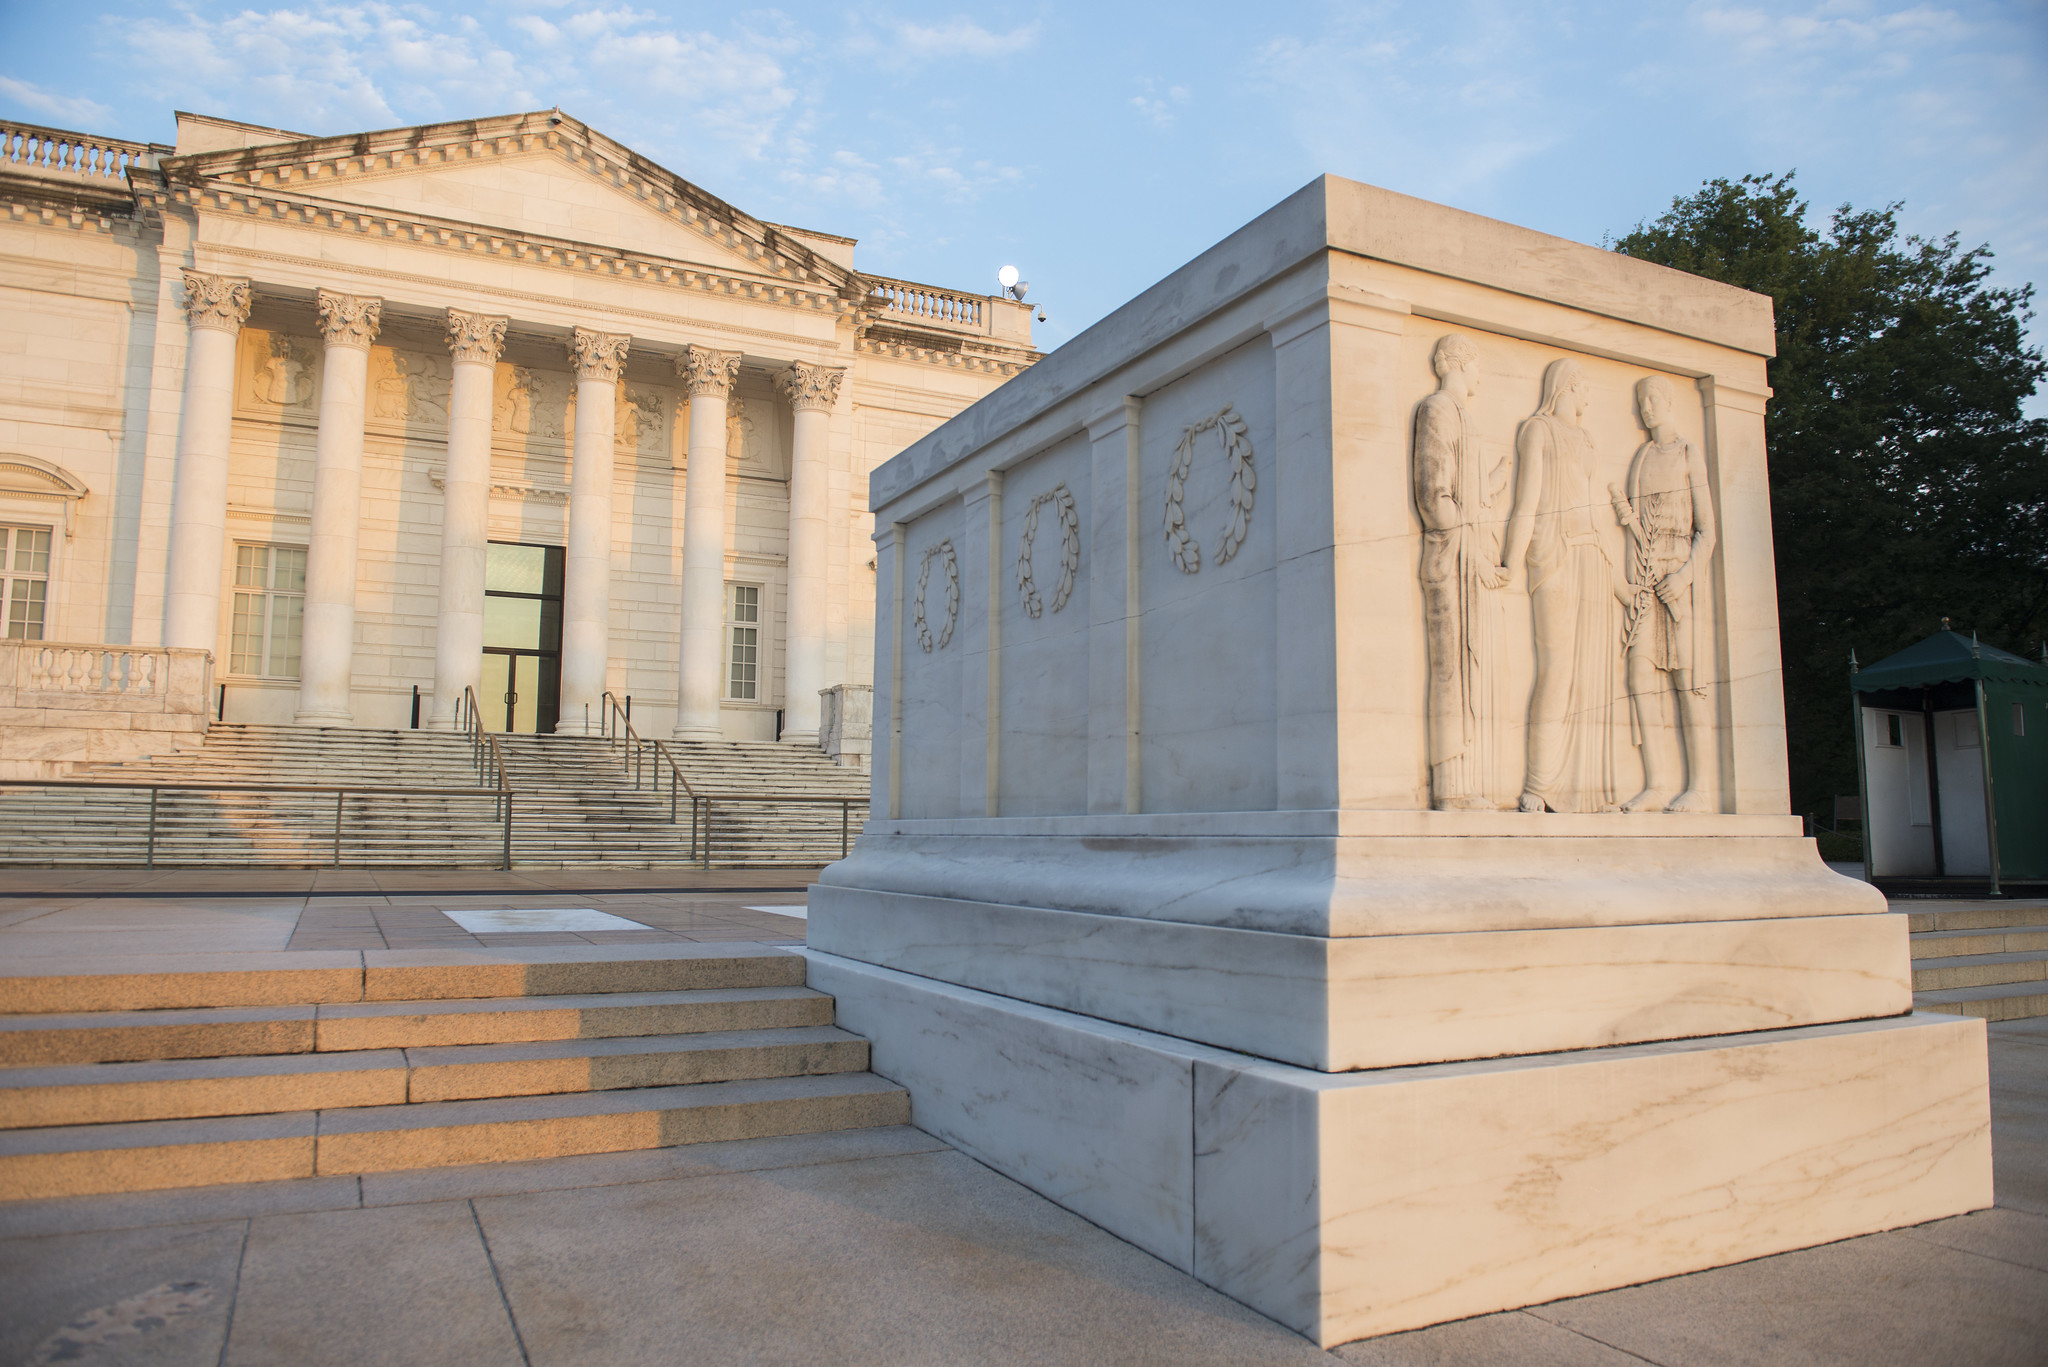 The Tomb of the Unknown Soldier, with carved figures representing Peace, Victory, and Valor